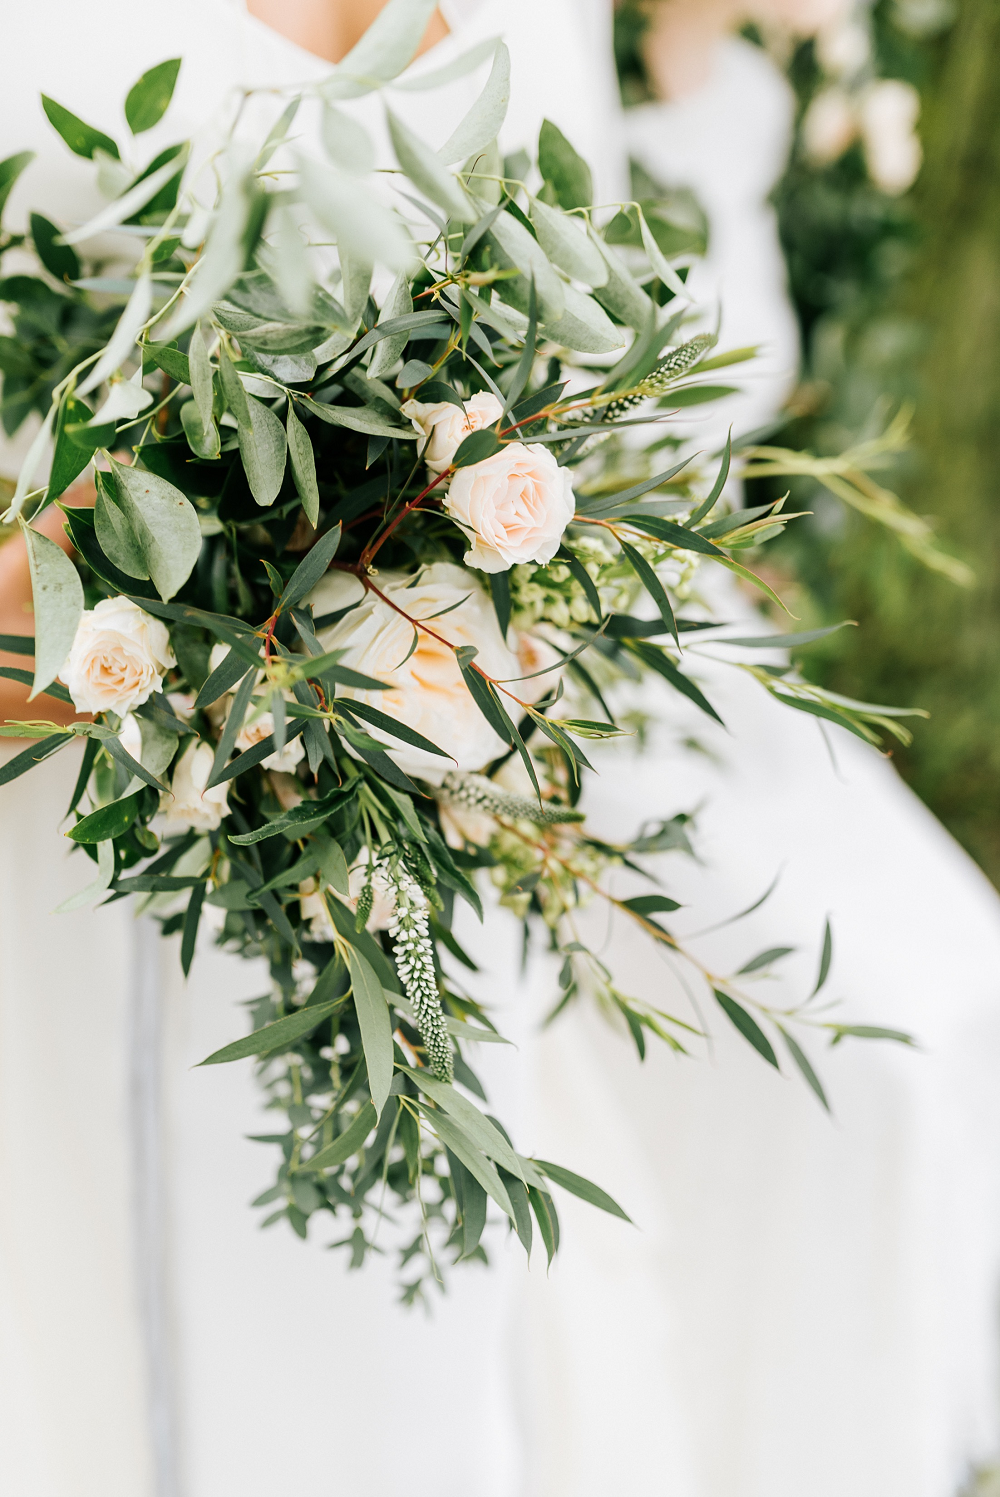 Lush Greenery Wedding Inspired Styled Shoot at Cornman Farms Bridal Bouquet by Fleurology